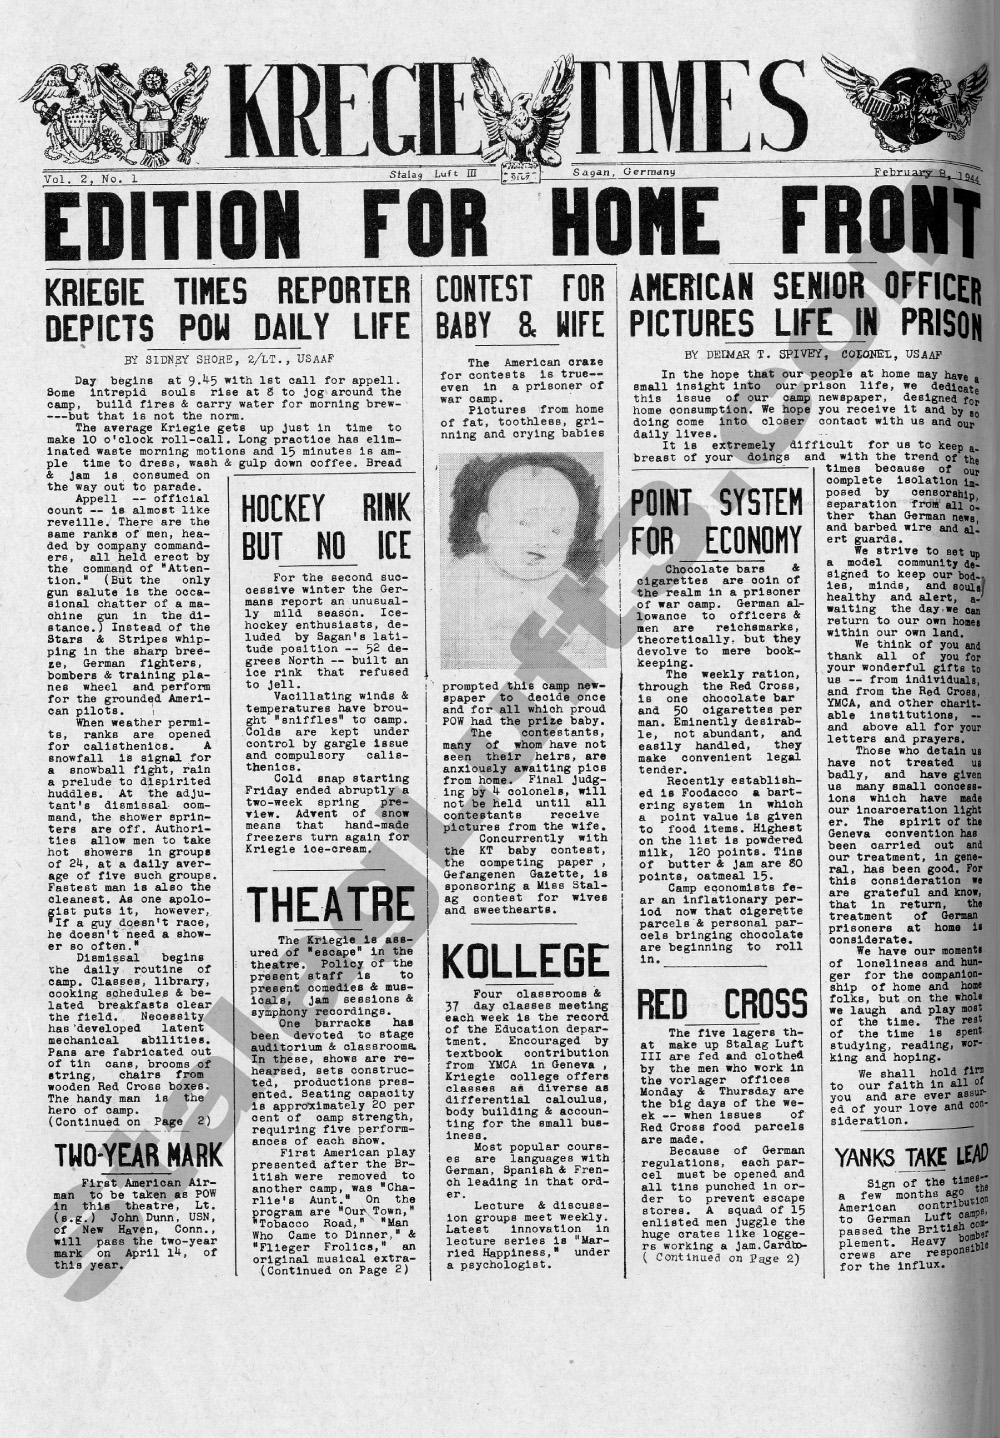 The Kriegie Times POW Newspaper Published in Stalag Luft III